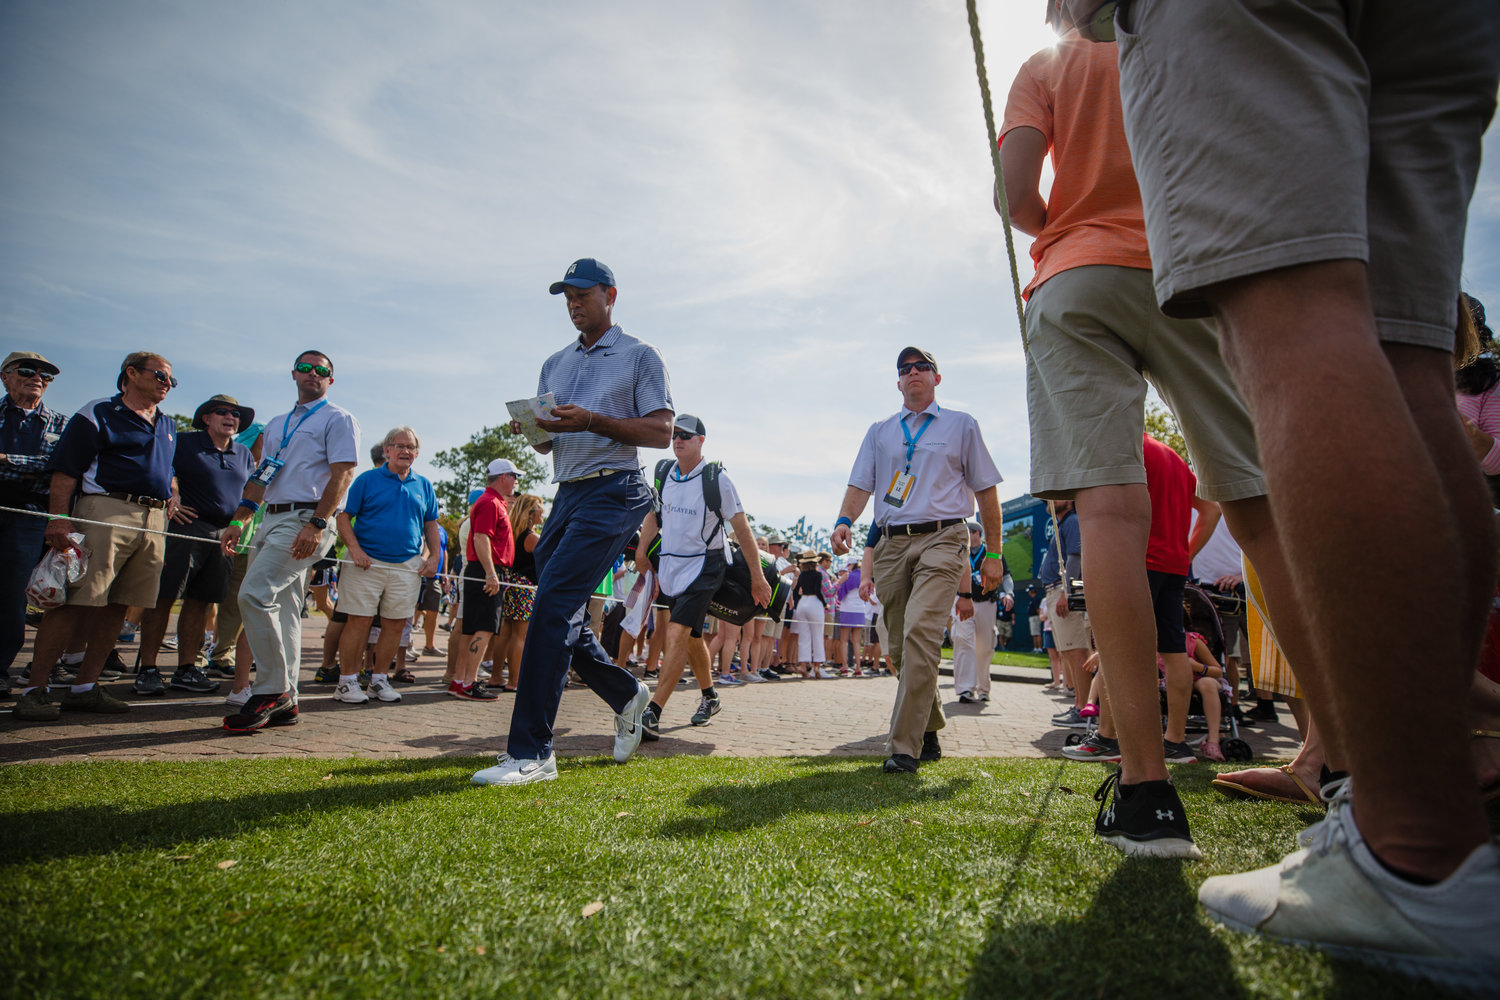 Tiger Woods walks to the next hole Friday at THE PLAYERS.